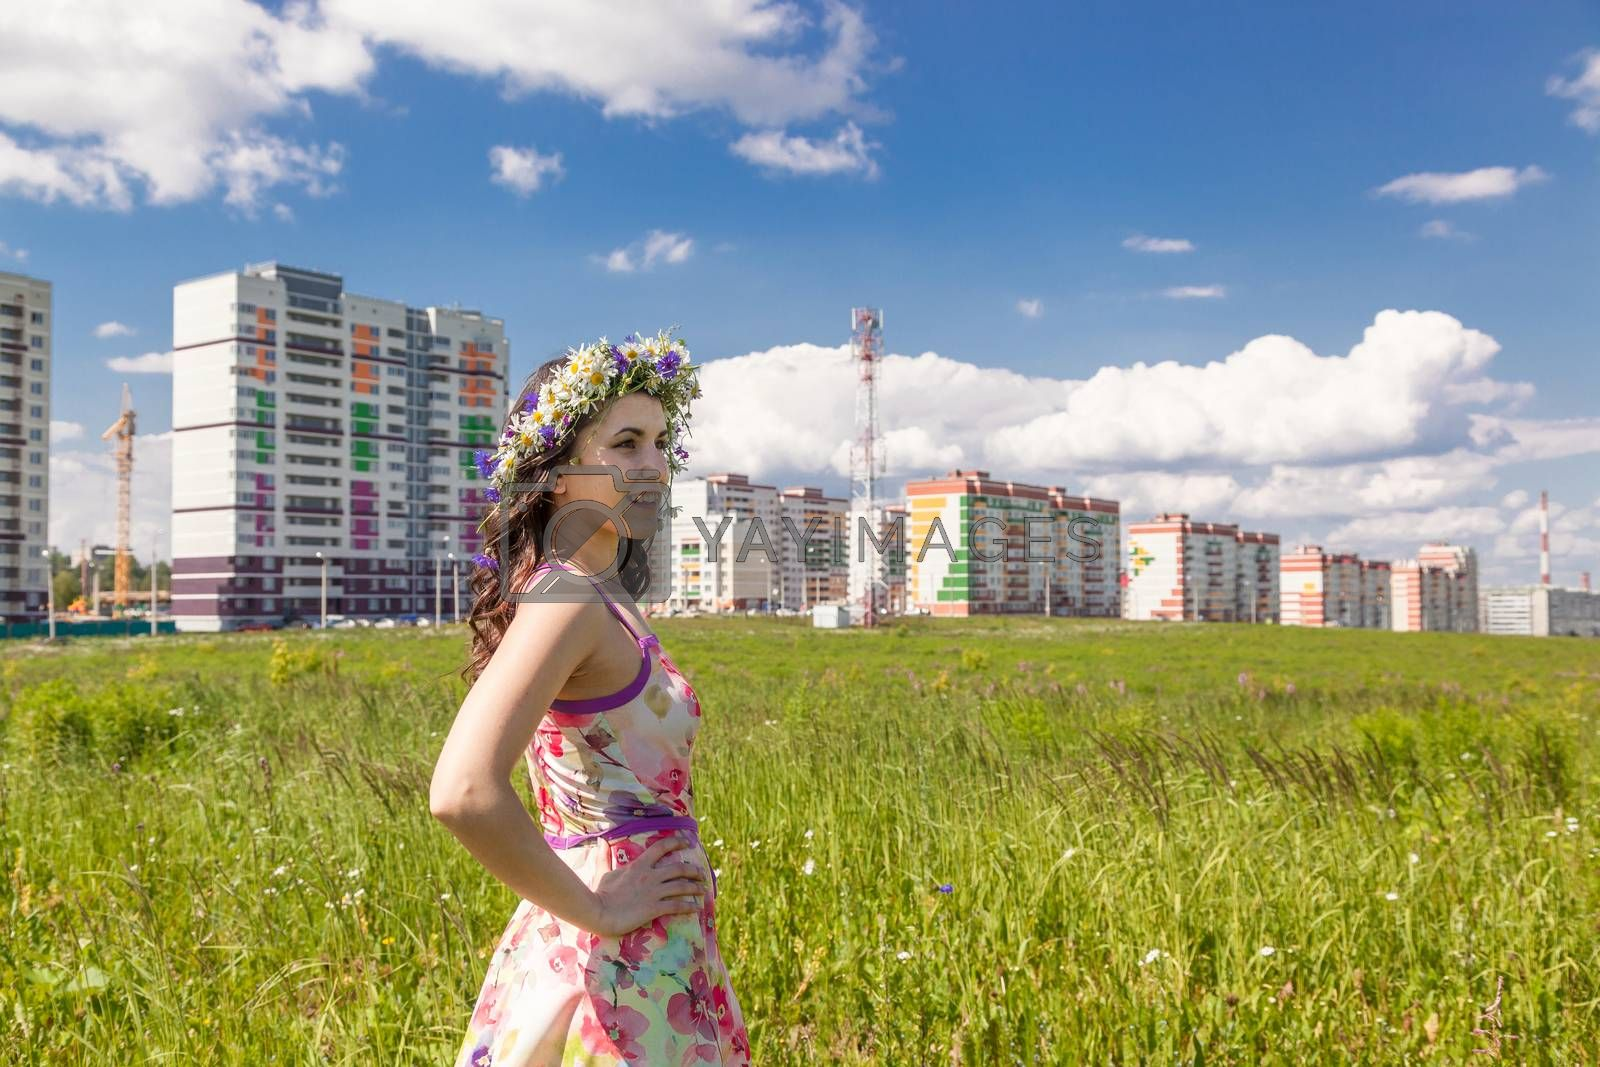 Portrait of the beautiful girl in the field against the background of the city